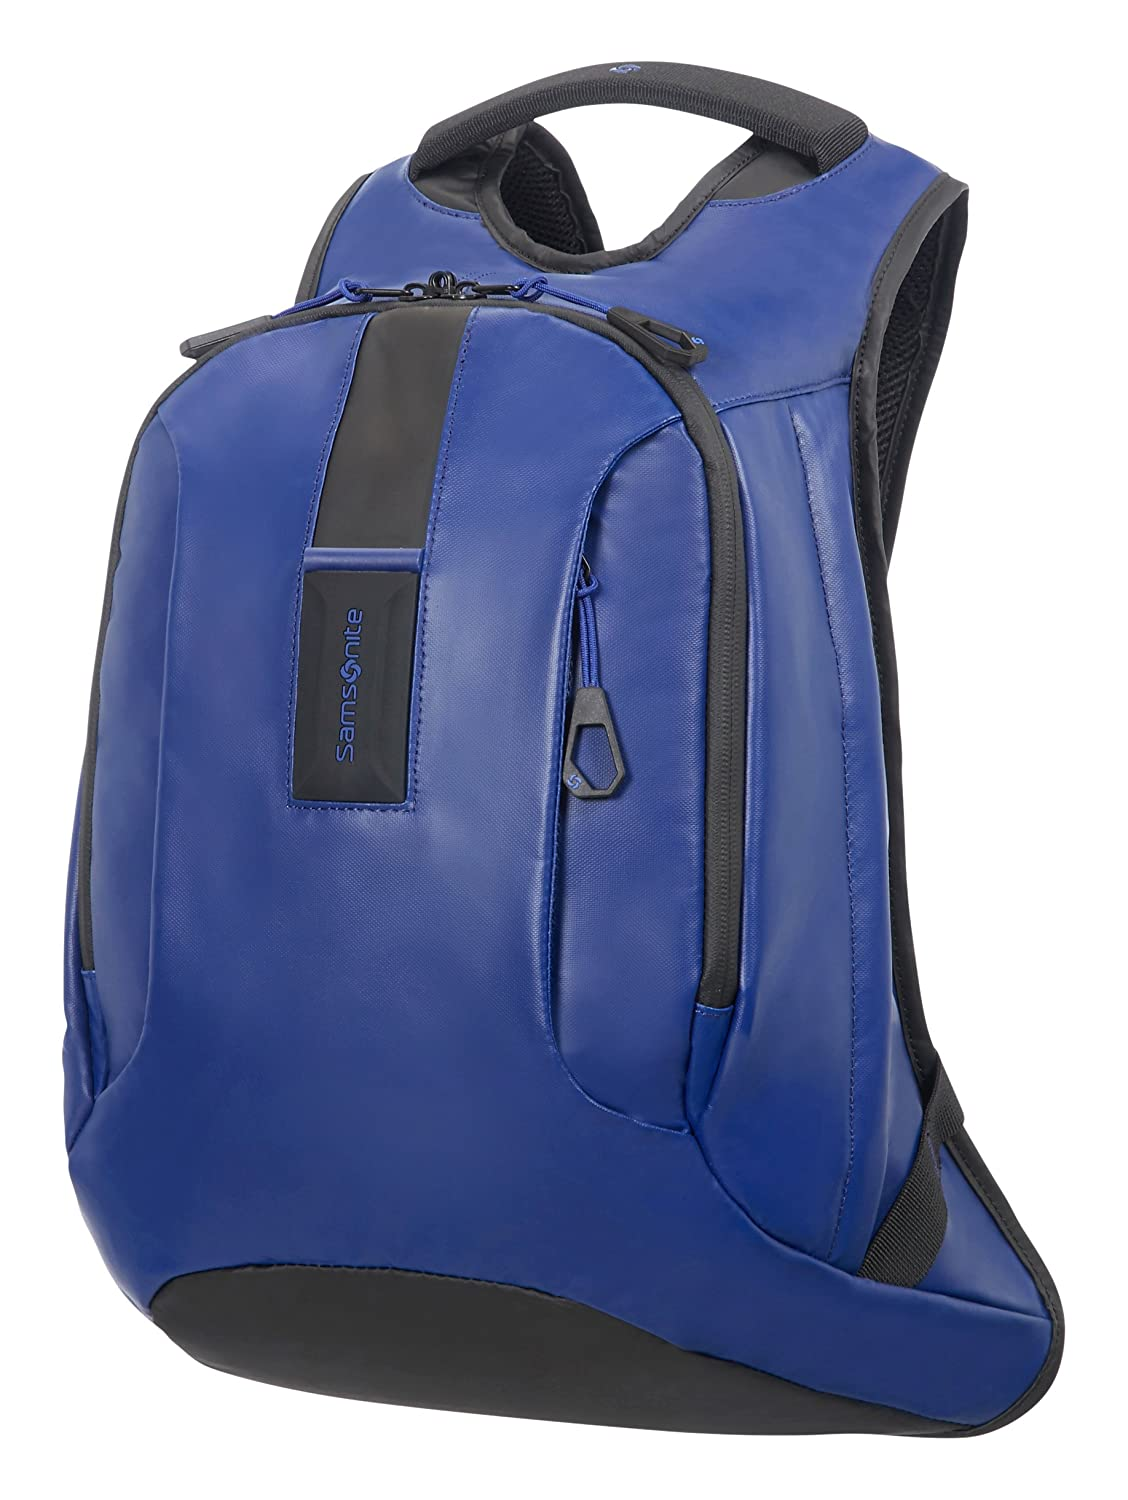 Samsonite Paradiver Light Mochila Tipo Casual, 40 cm, 16 L, Color Azul: Amazon.es: Equipaje